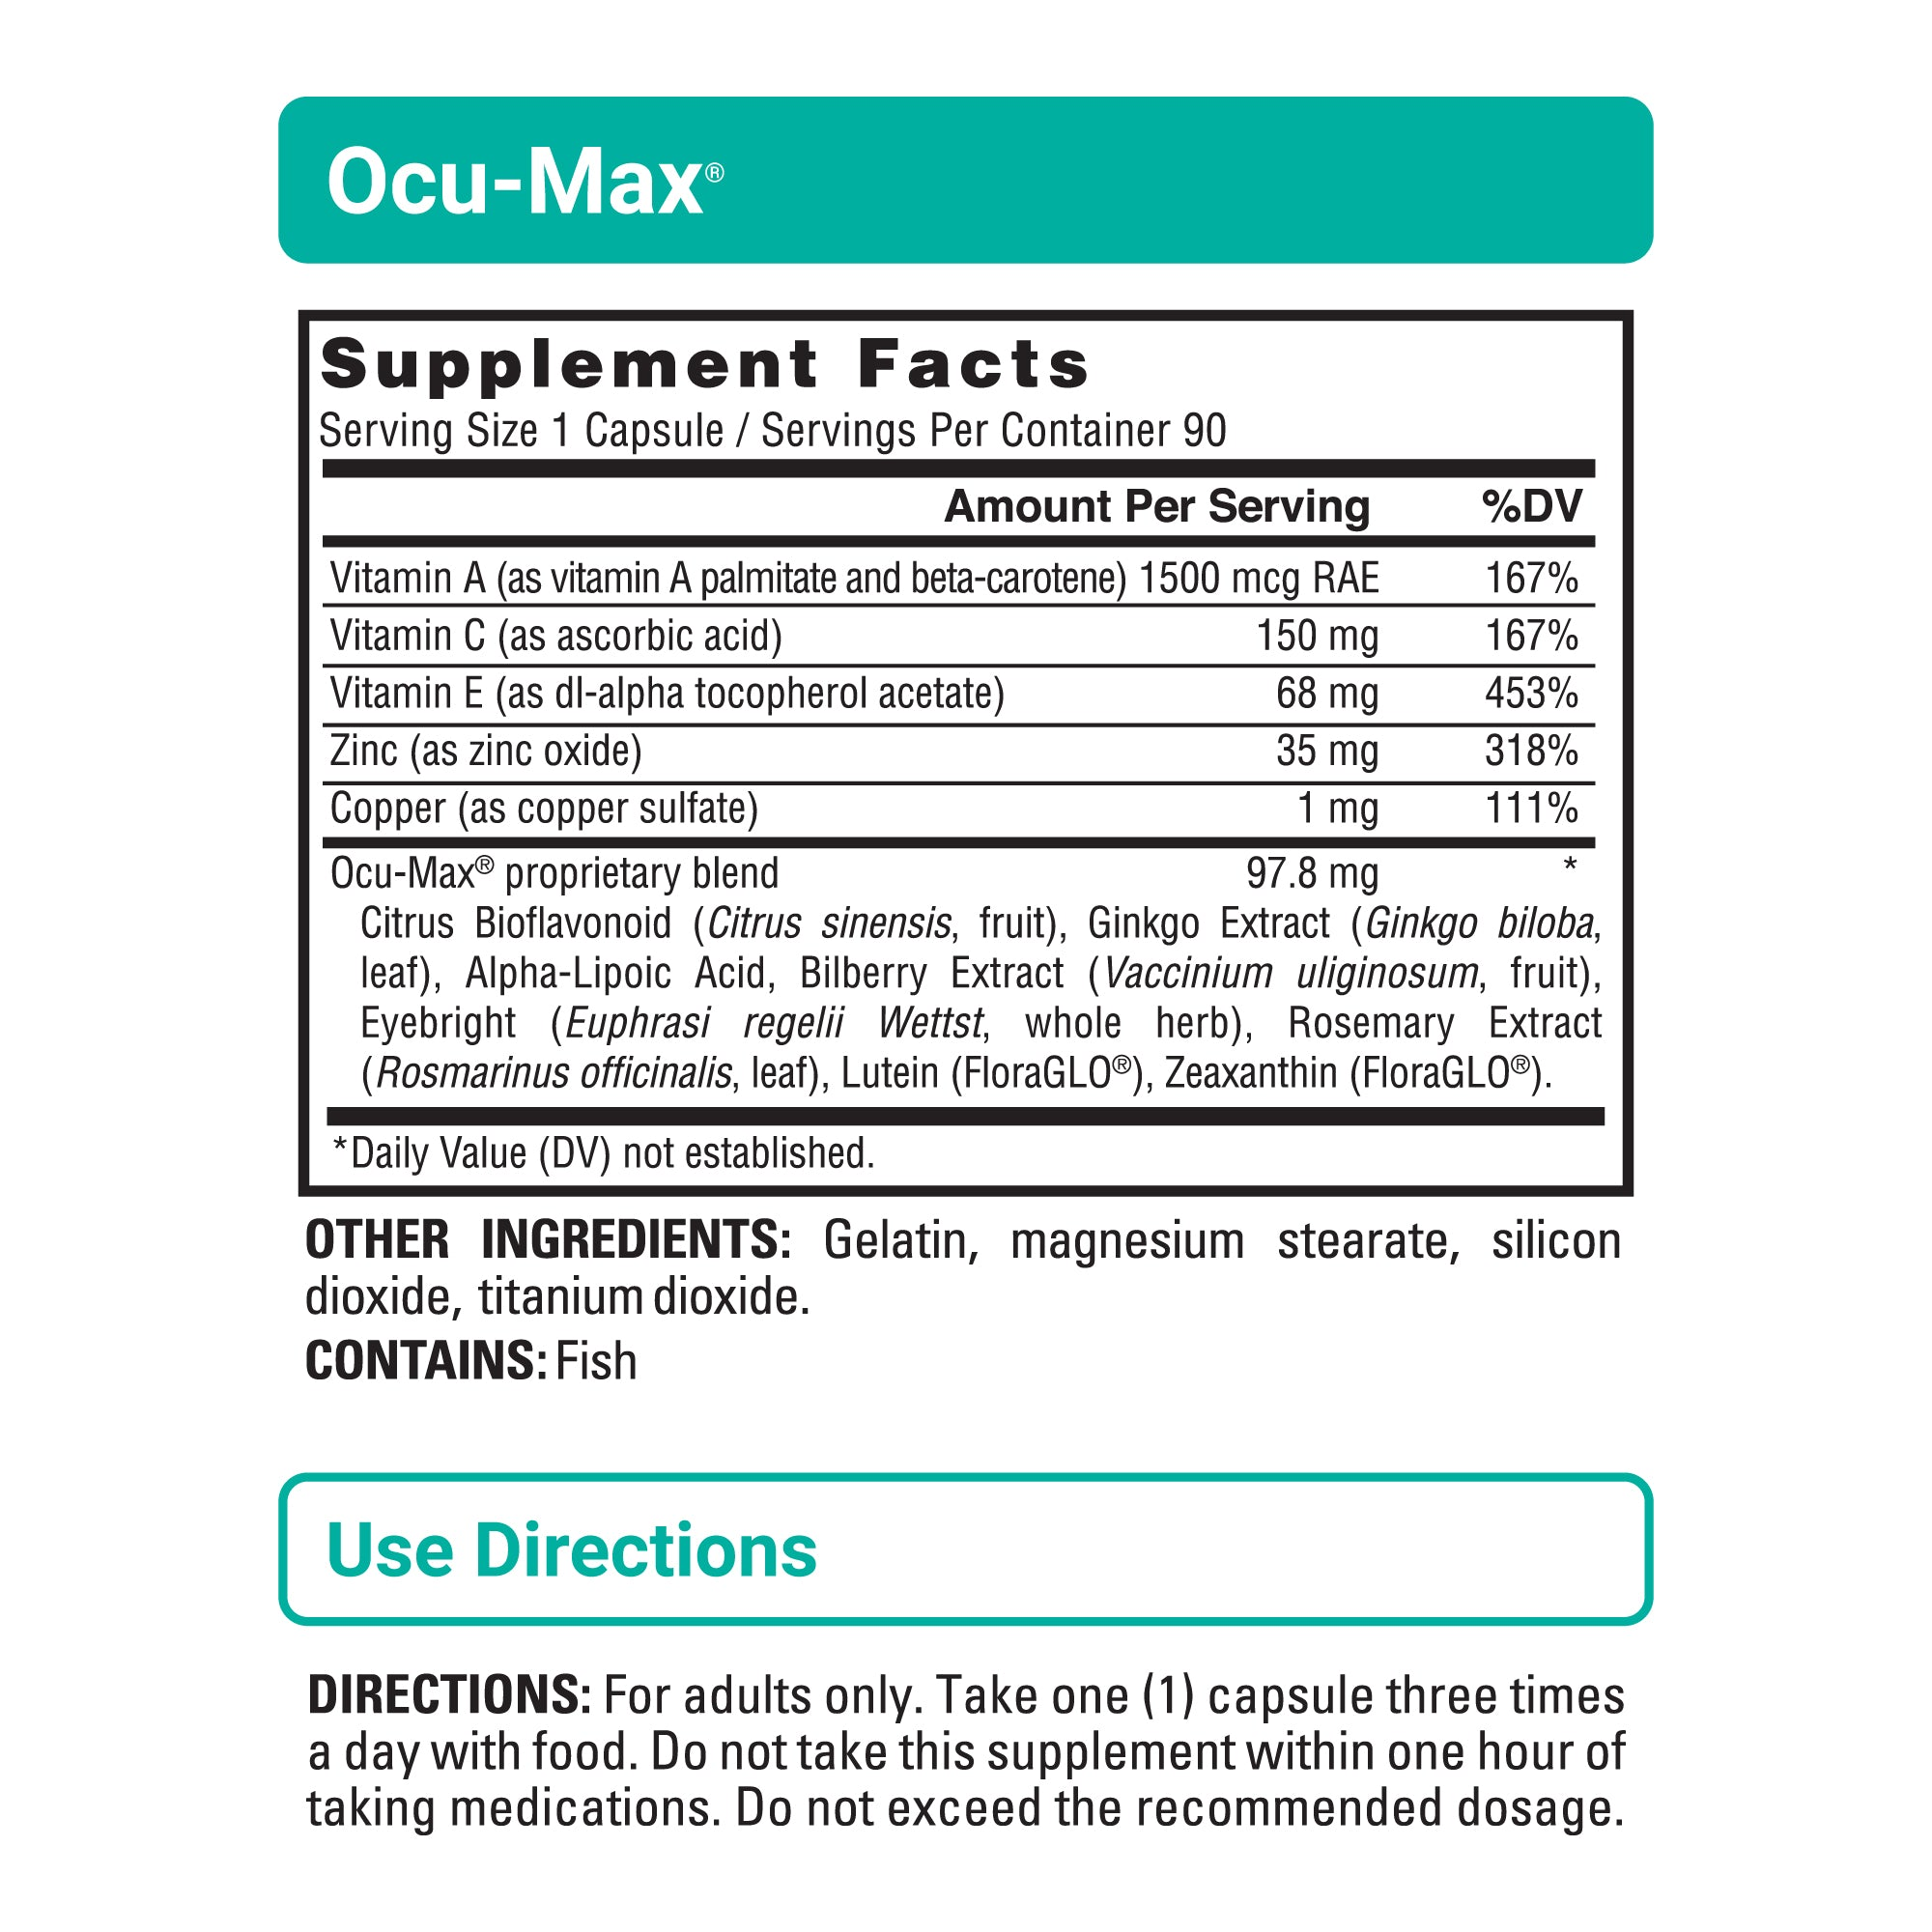 Ocu-Max sup facts